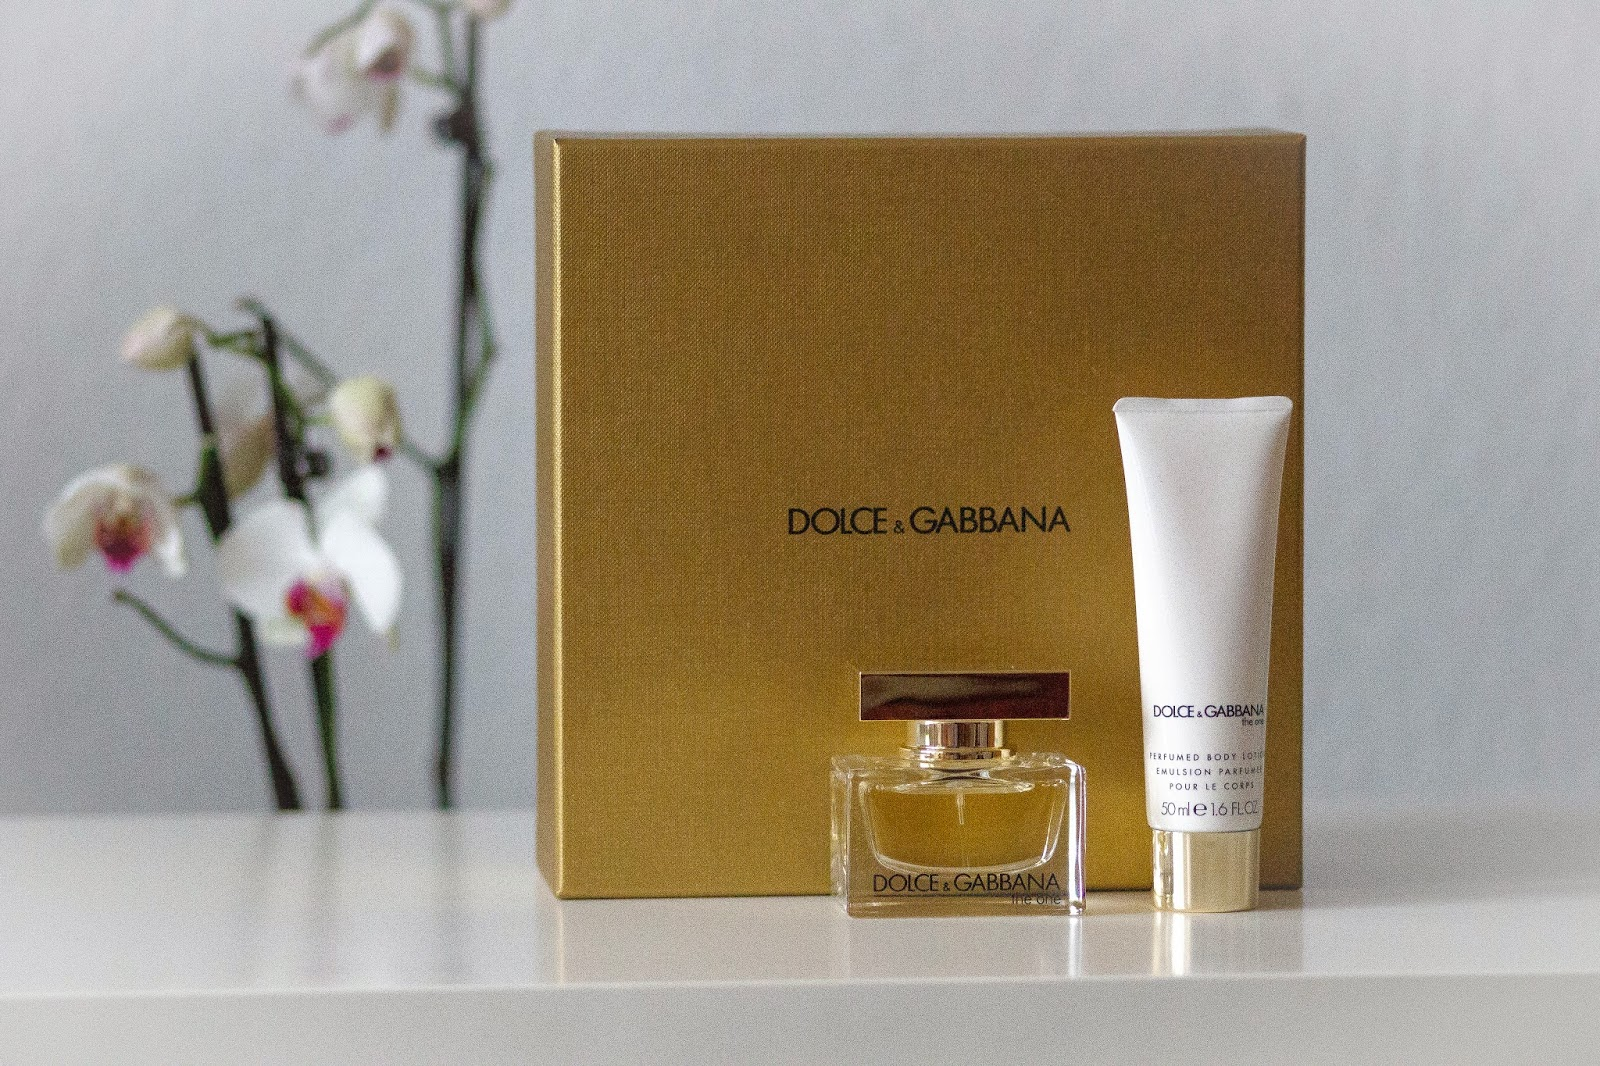 PERFUME: DOLCE & GABBANA THE ONE PRIZMAHFASHION